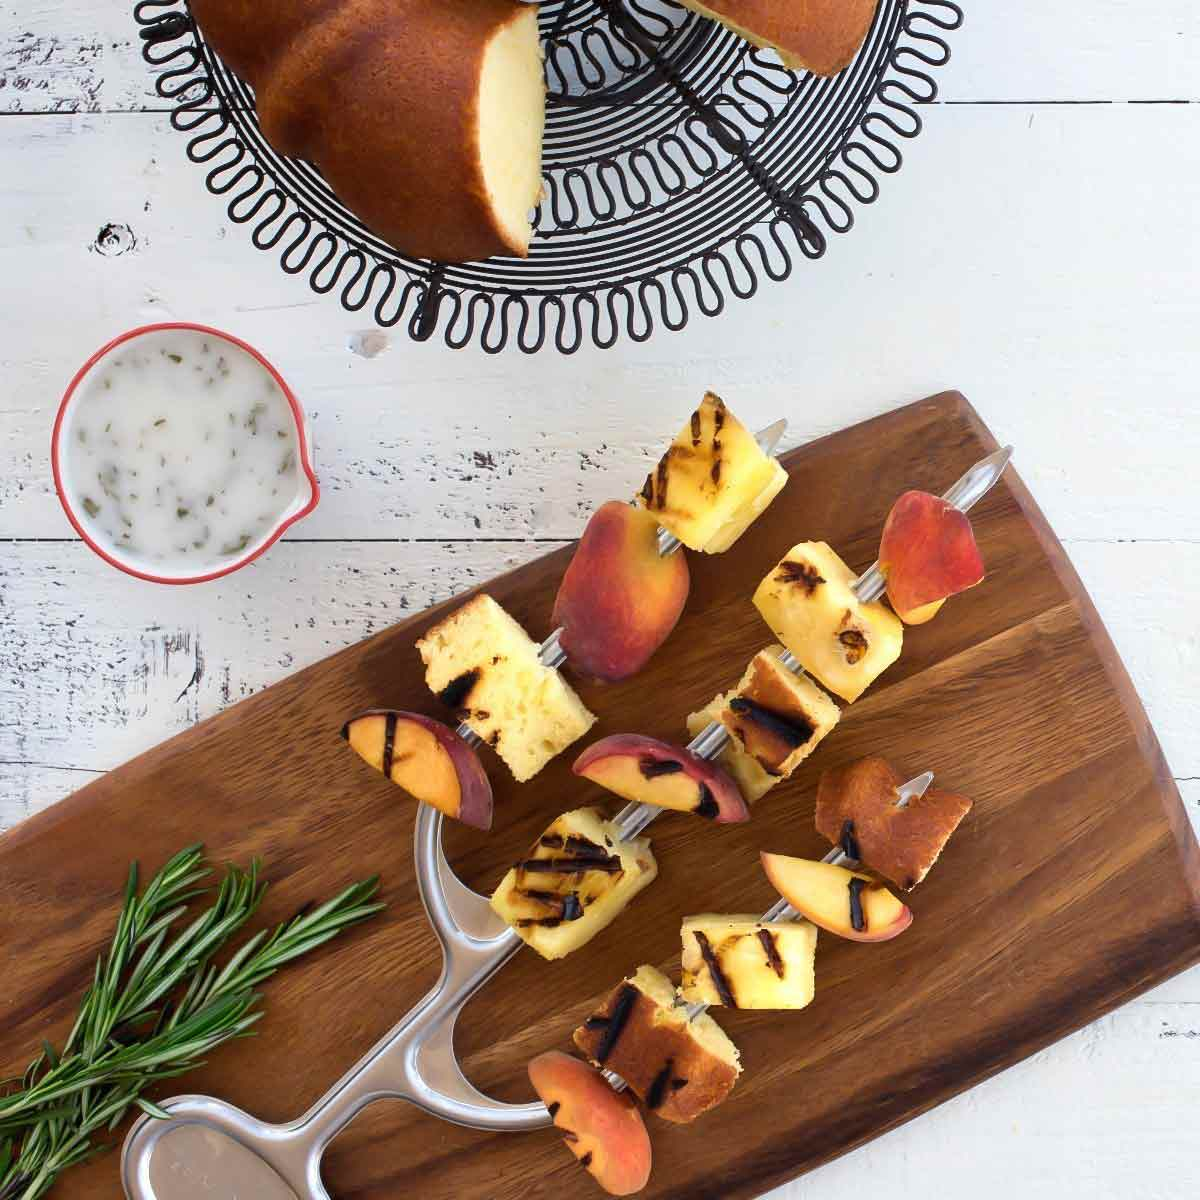 Nordic Ware Cactus Kebob with Pineapple and Peaches